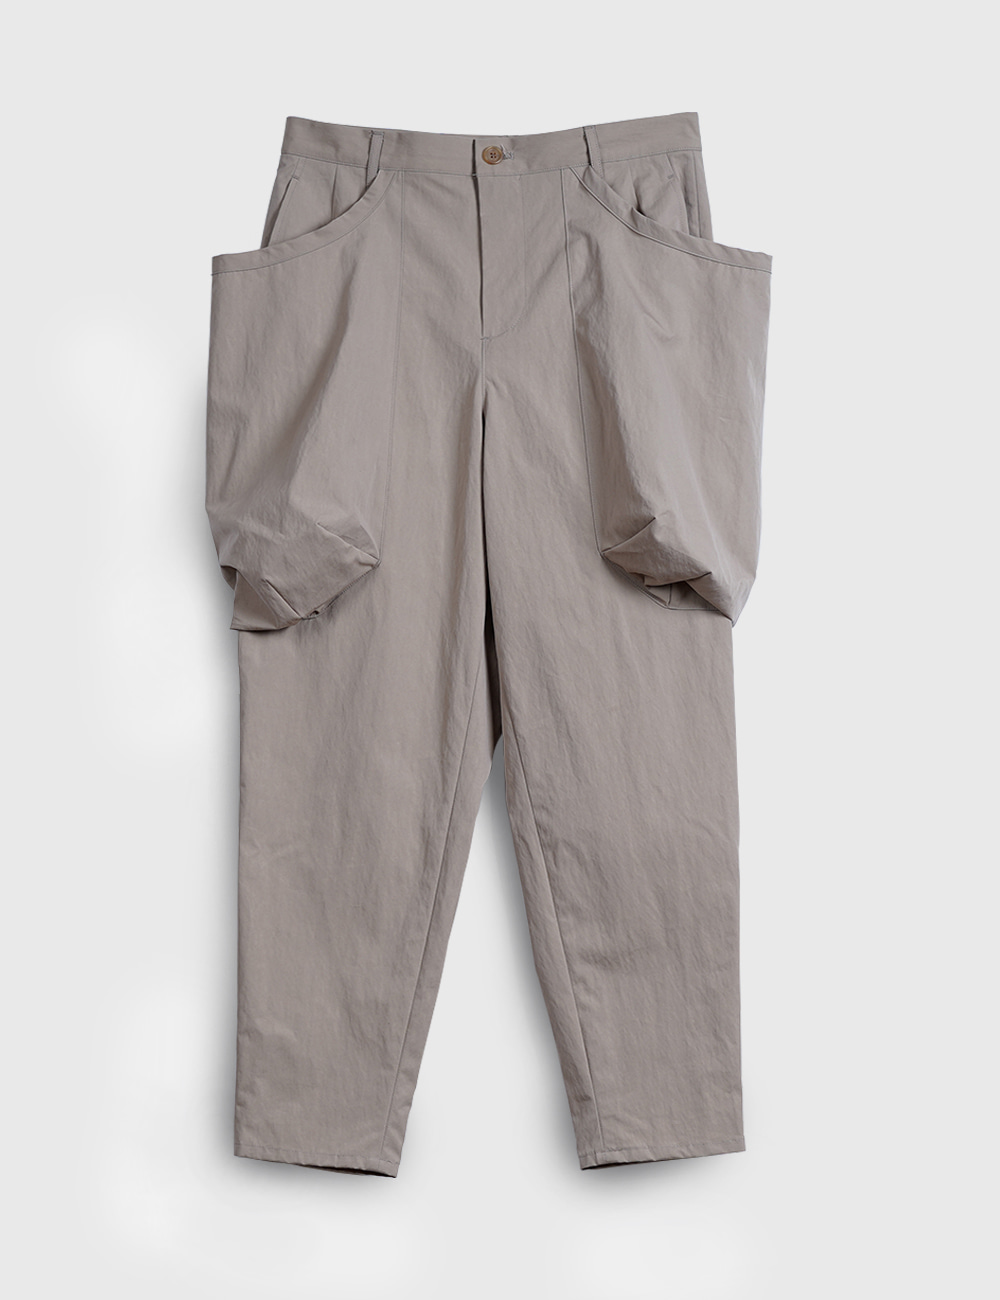 POCKET PANTS (BEIGE)